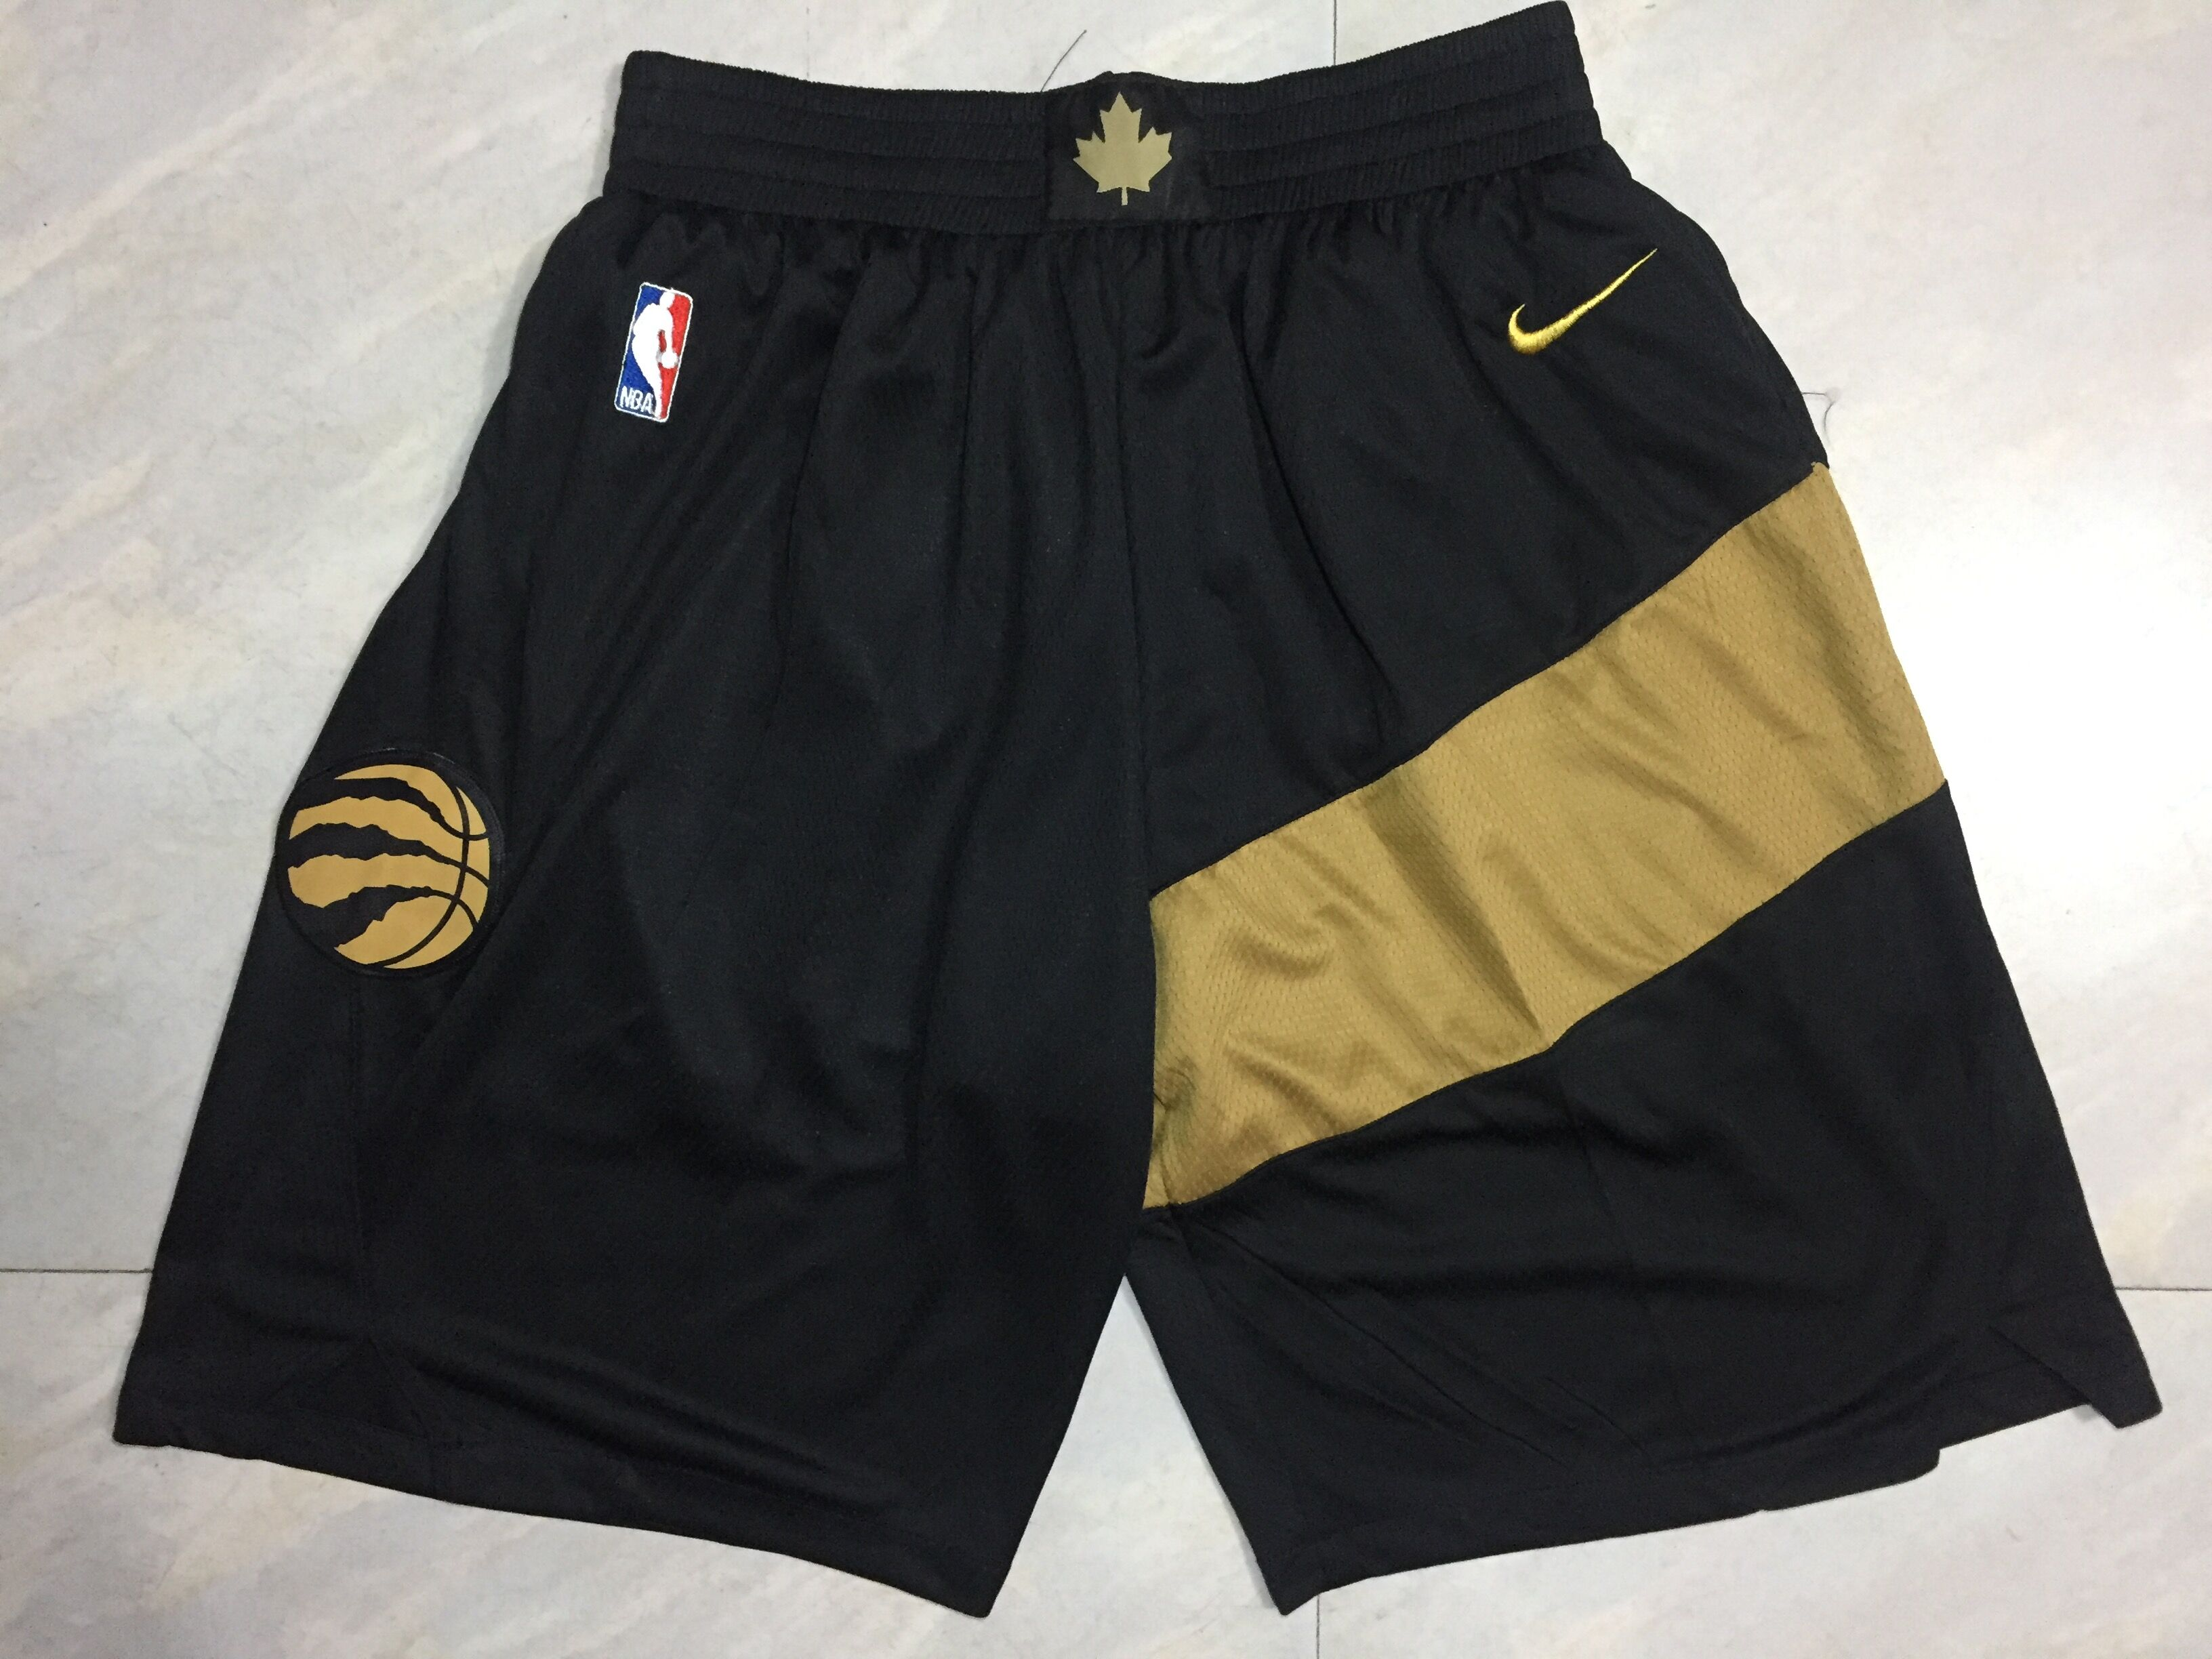 Raptors Black 2018-19 City Edition Shorts